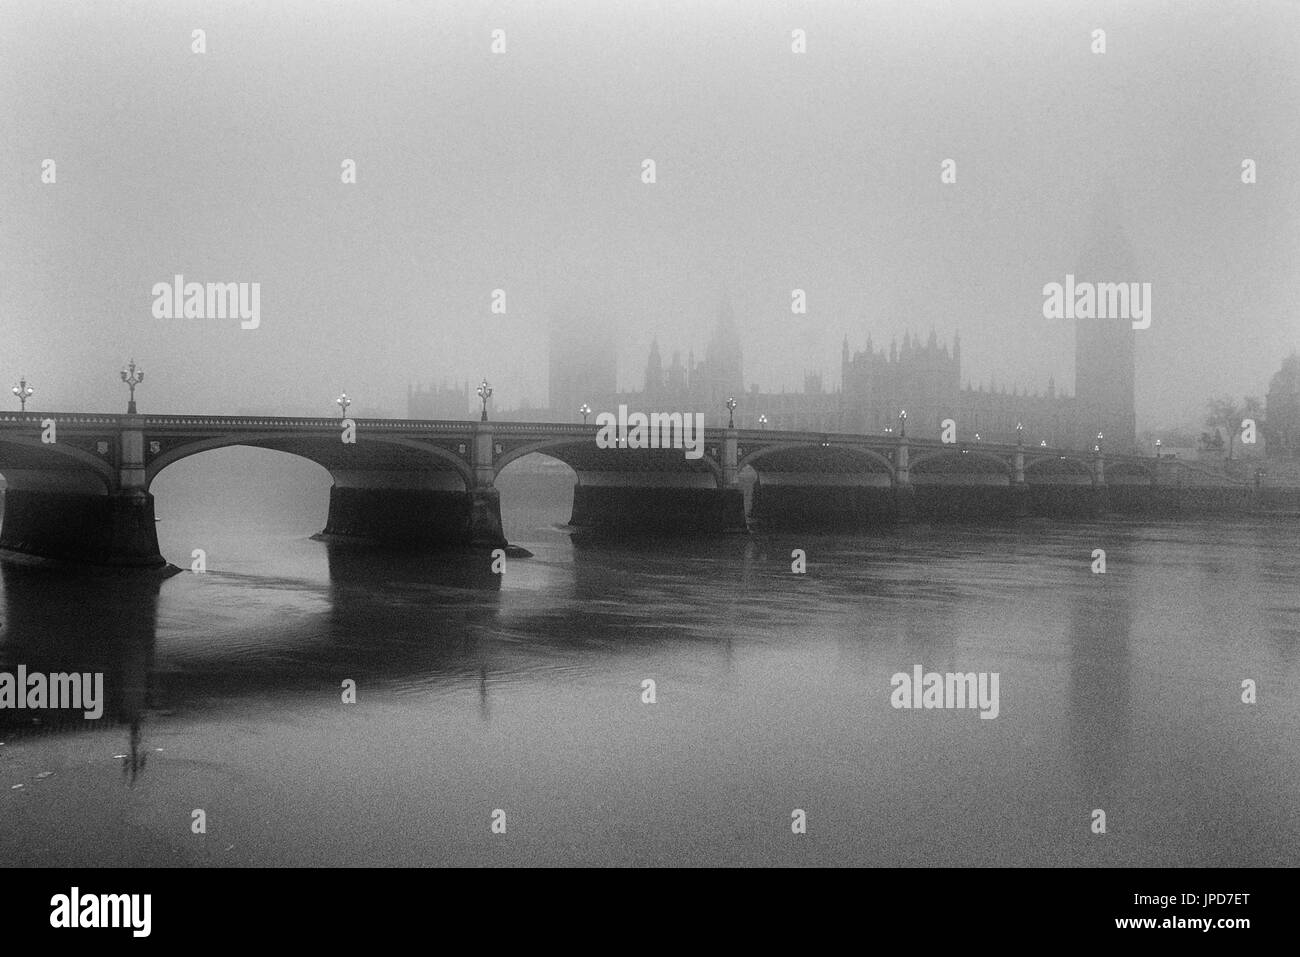 Palace of Westminster / Houses of Parliament in the fog. London. England. GB - Stock Image